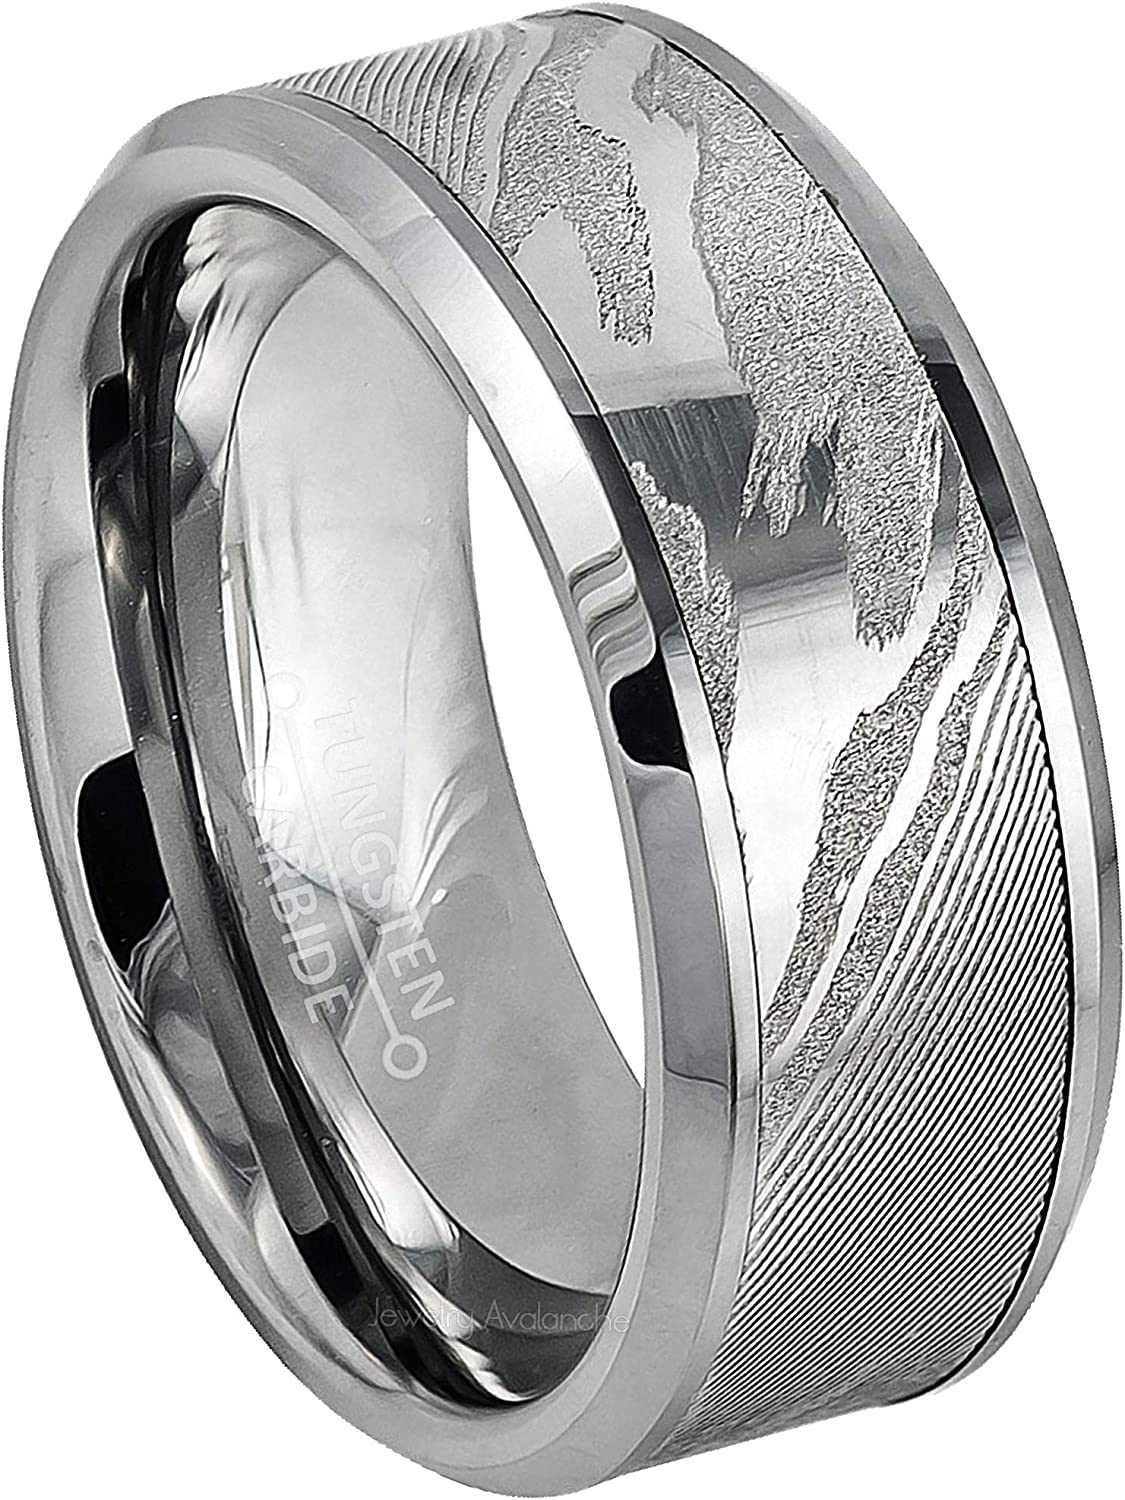 Jewelry Avalanche Mens Tungsten Ring Beveled Tungsten Wedding Band Comfort Fit Anniversary Ring